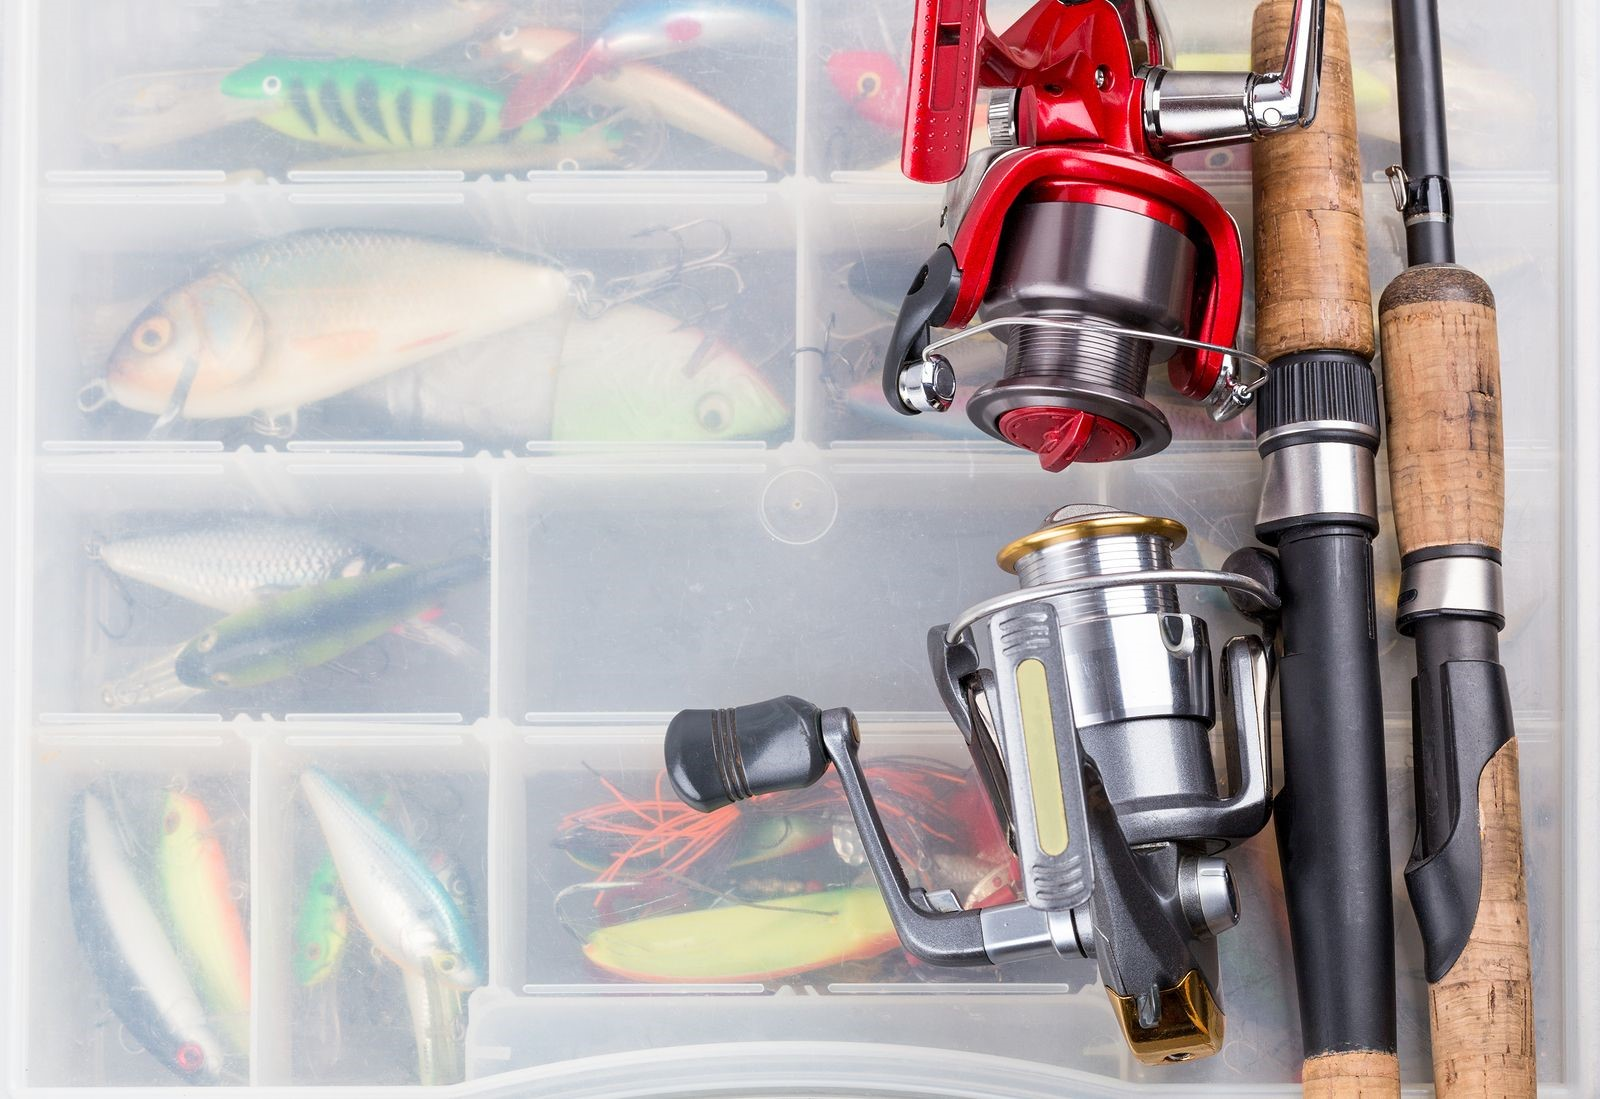 Fishing Shops Share a Helpful Guide to Buying the Right Fishing Gear for You